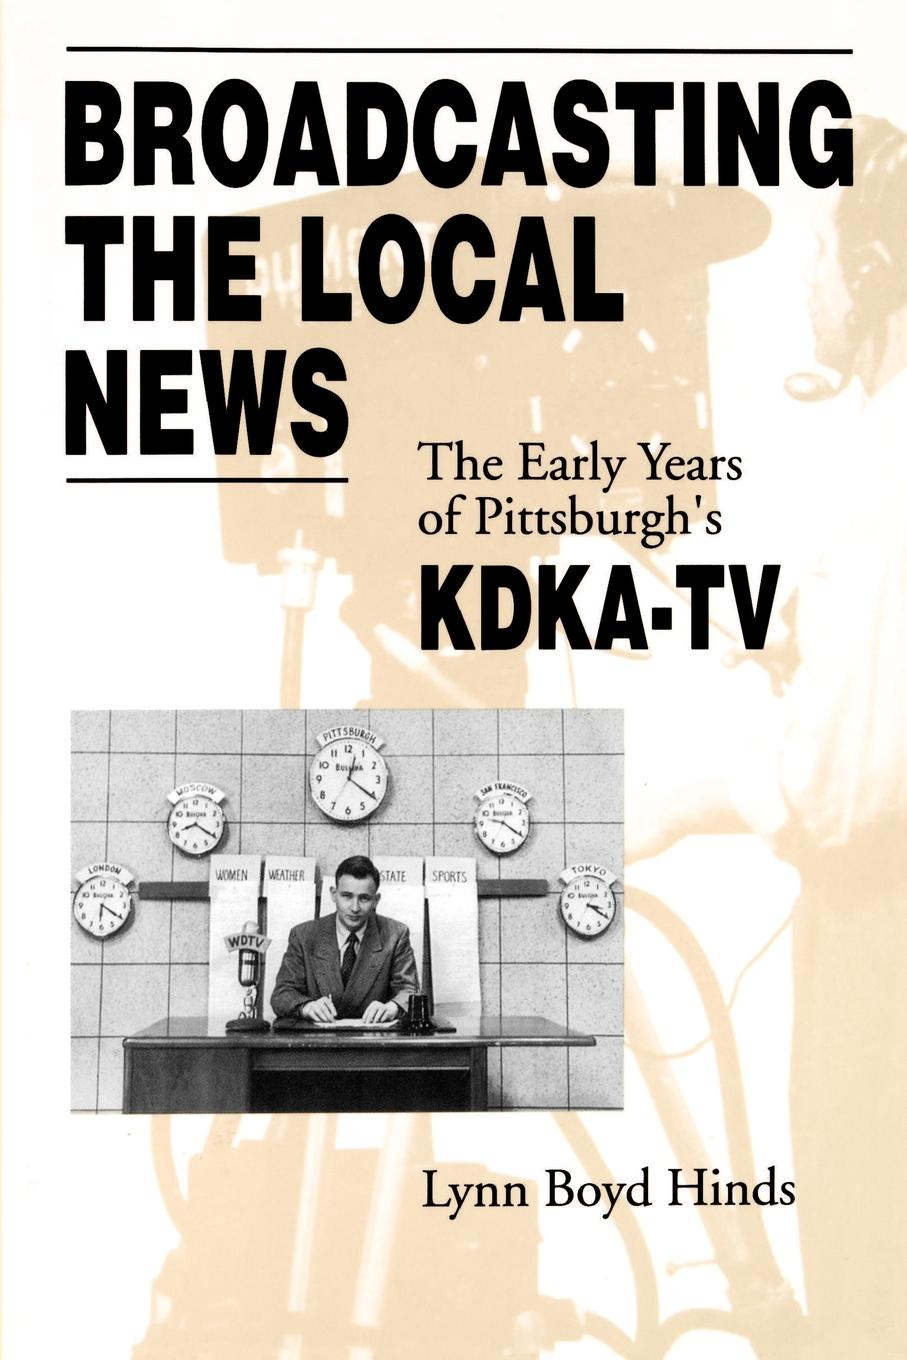 Lynn Boyd Hinds. Broadcasting the Local News. The Early Years of Pittsburgh's Kdka-TV